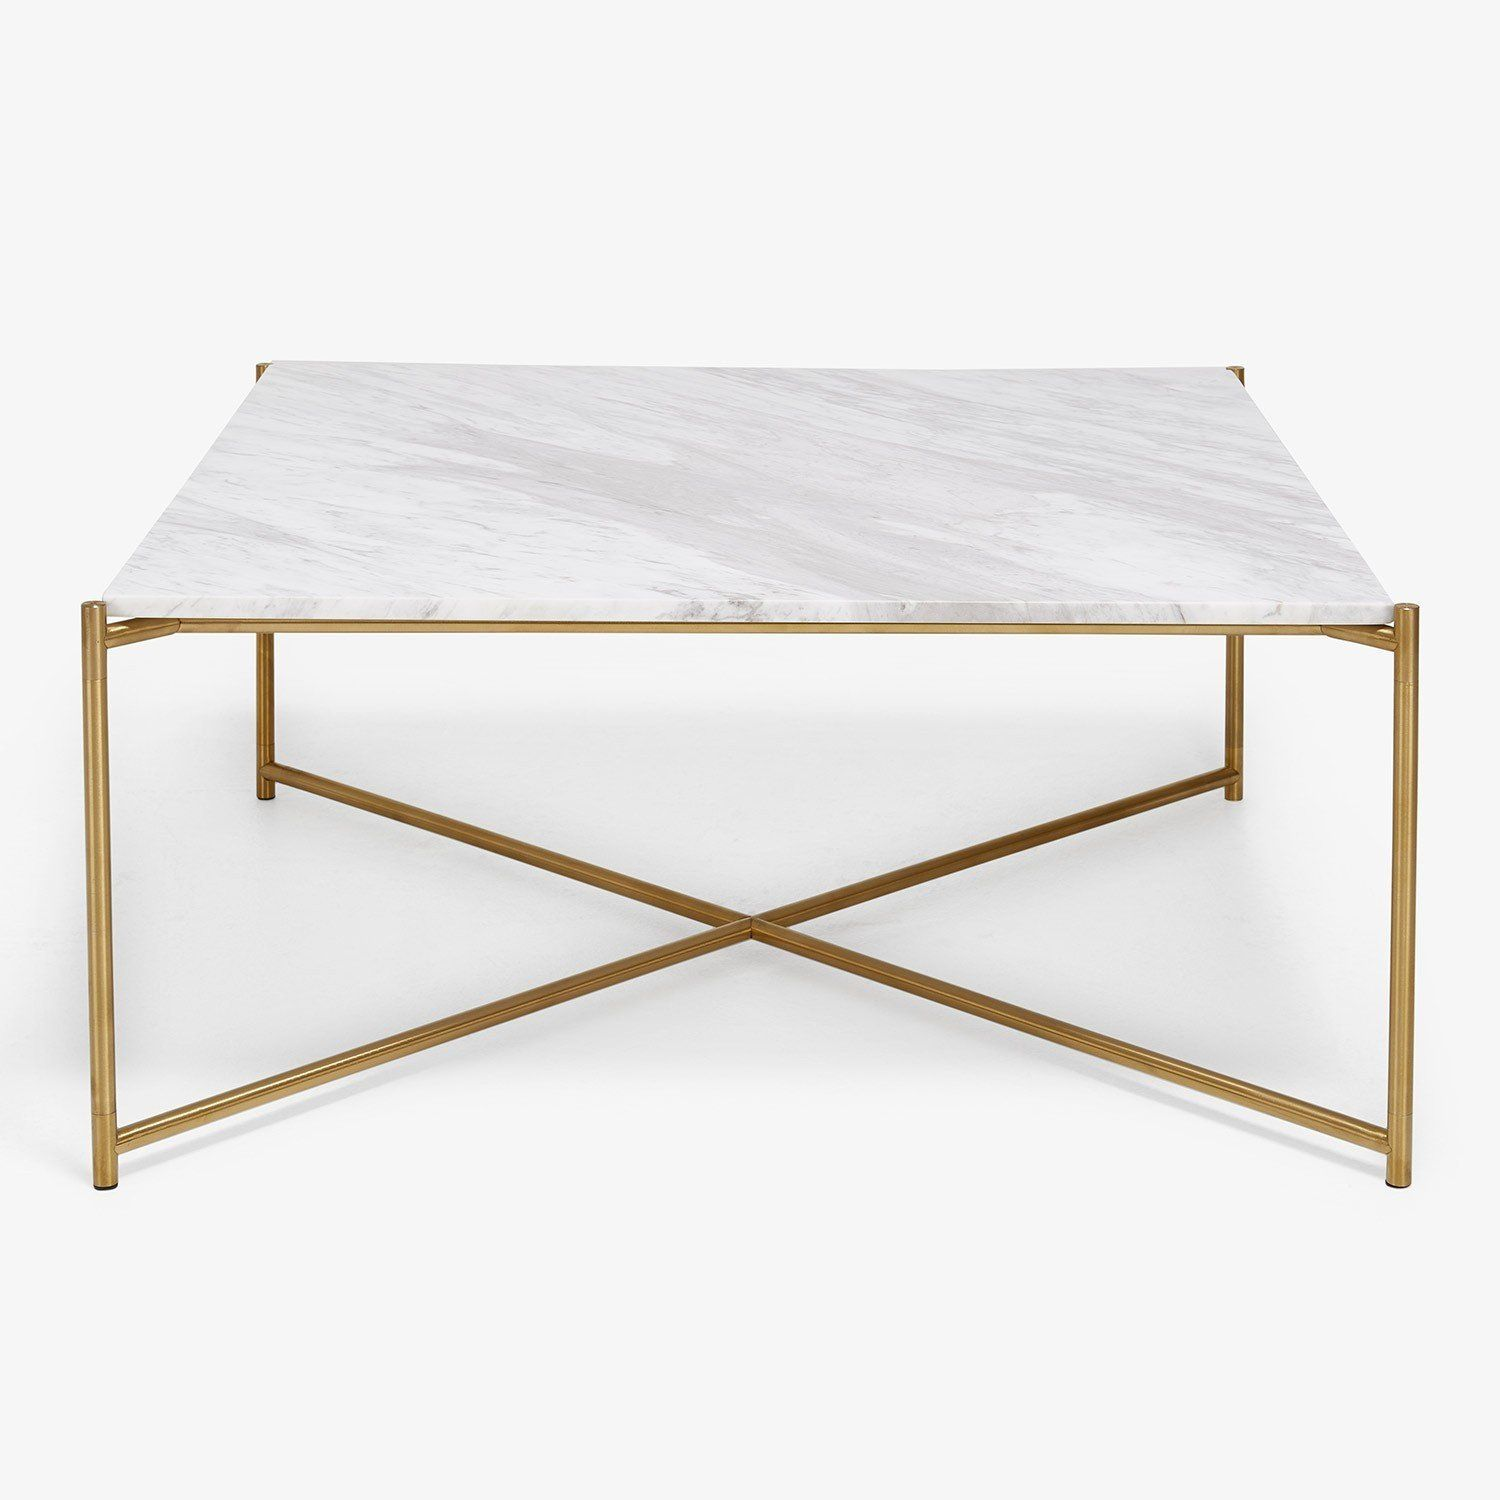 Irving Place Marble Brass Coffee Table Prospective Abode - Marble and brass end table